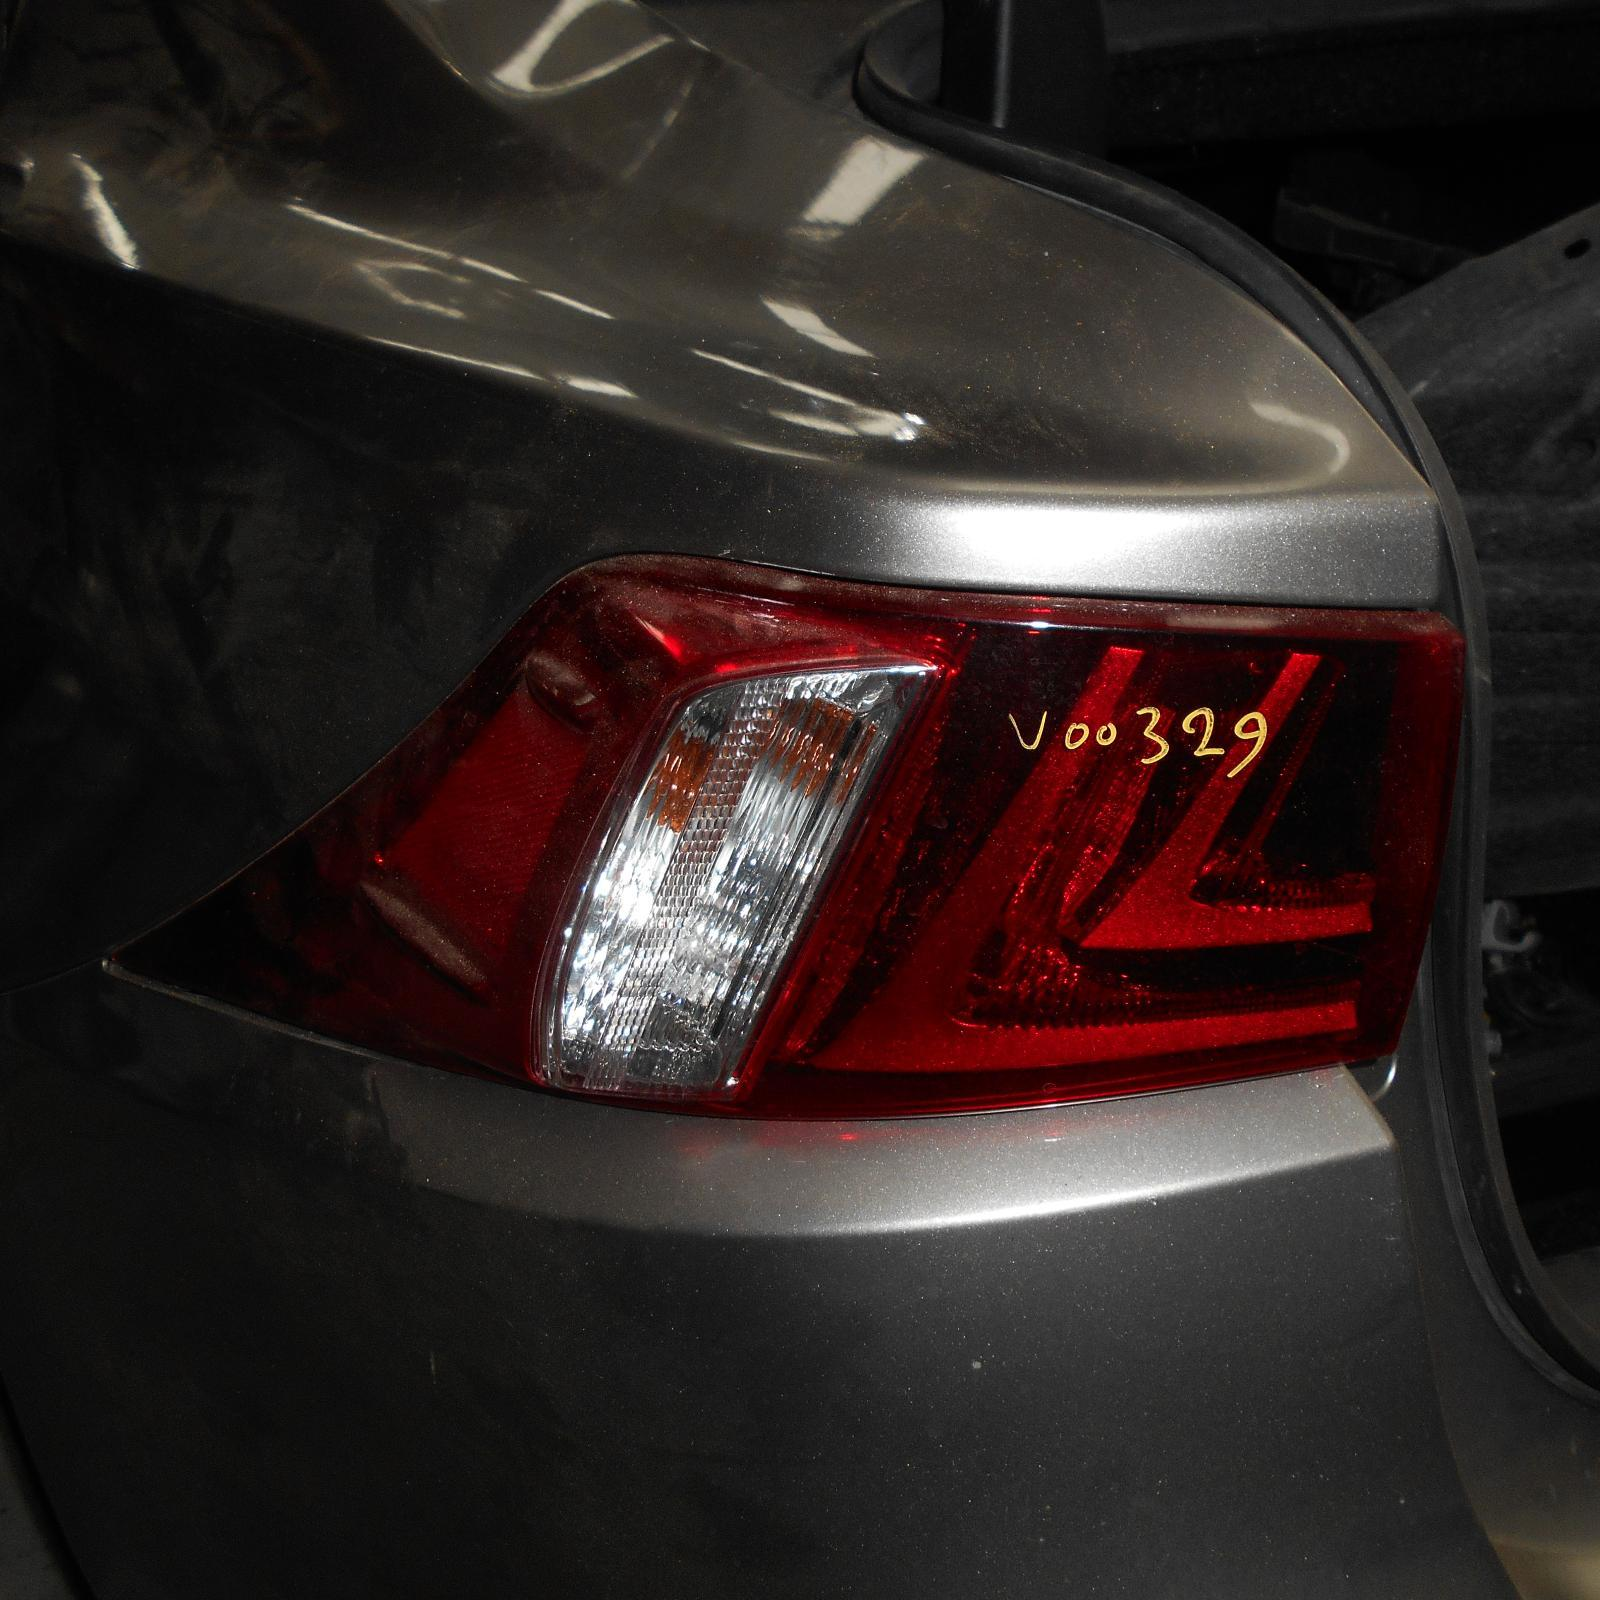 LEXUS IS, Left Taillight, IS200t/IS250/IS300H/IS350, XE30, 07/13-